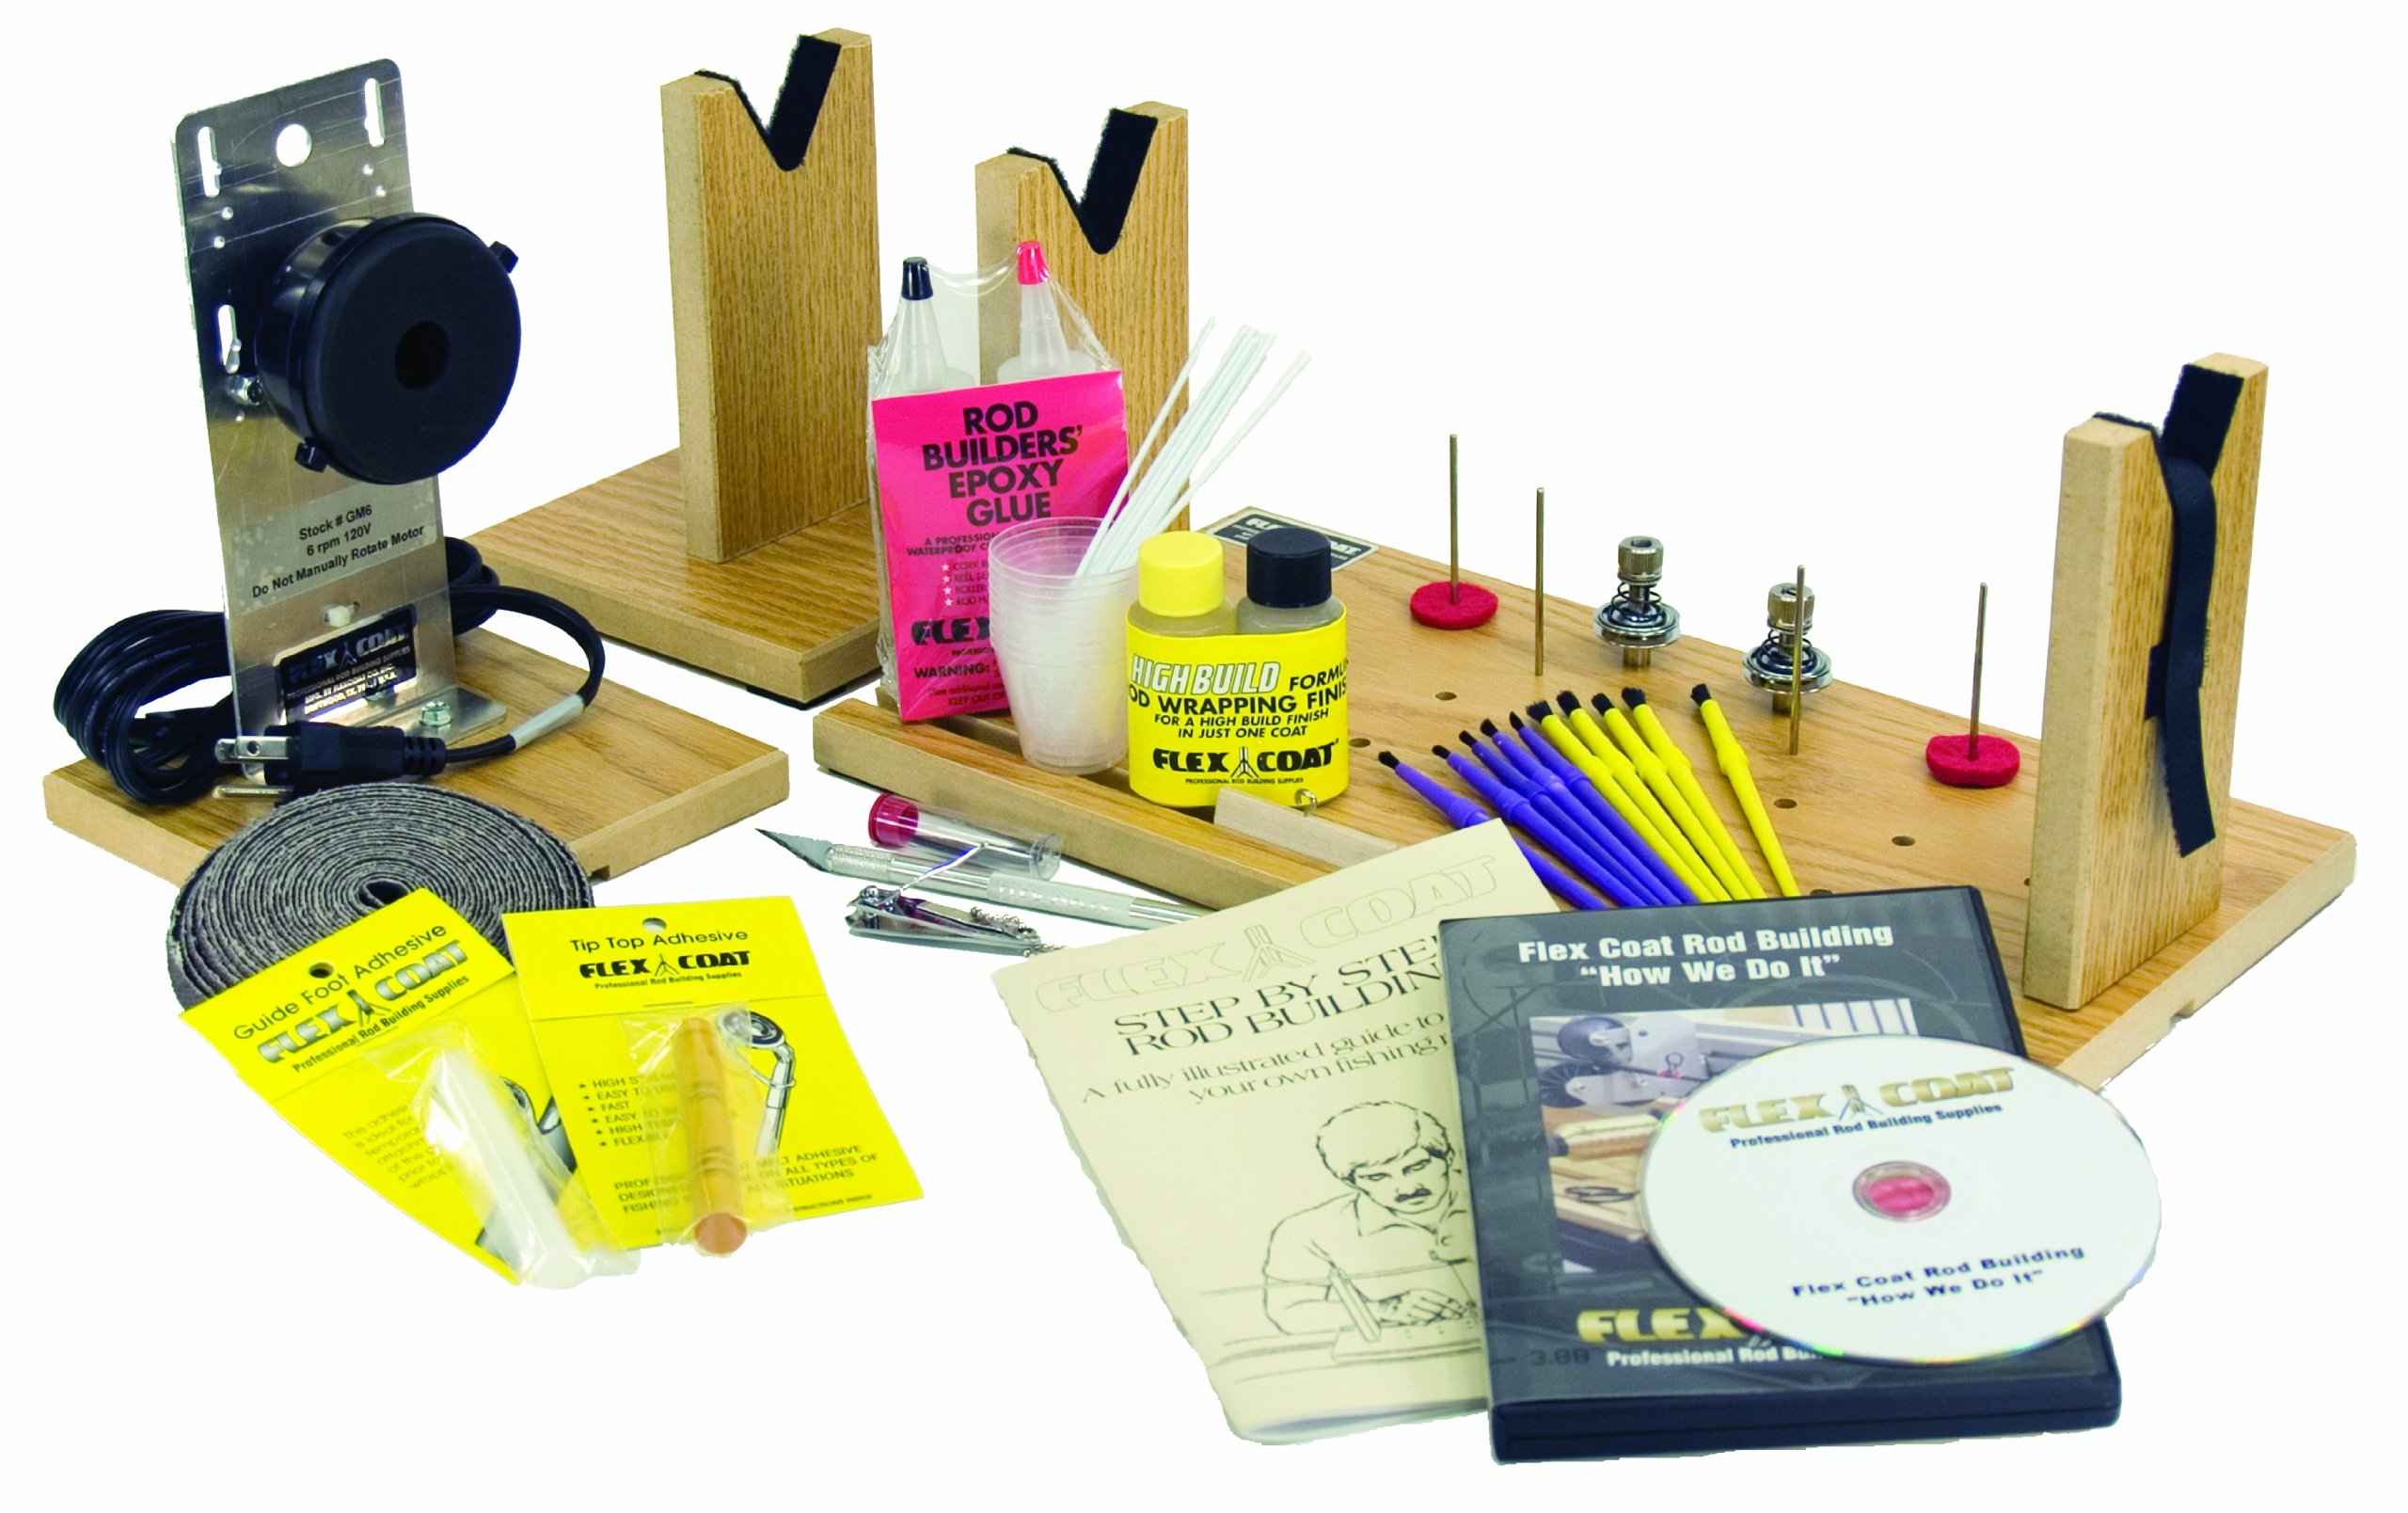 Flex Coat Rod Building Start-up Kit by Flex Coat